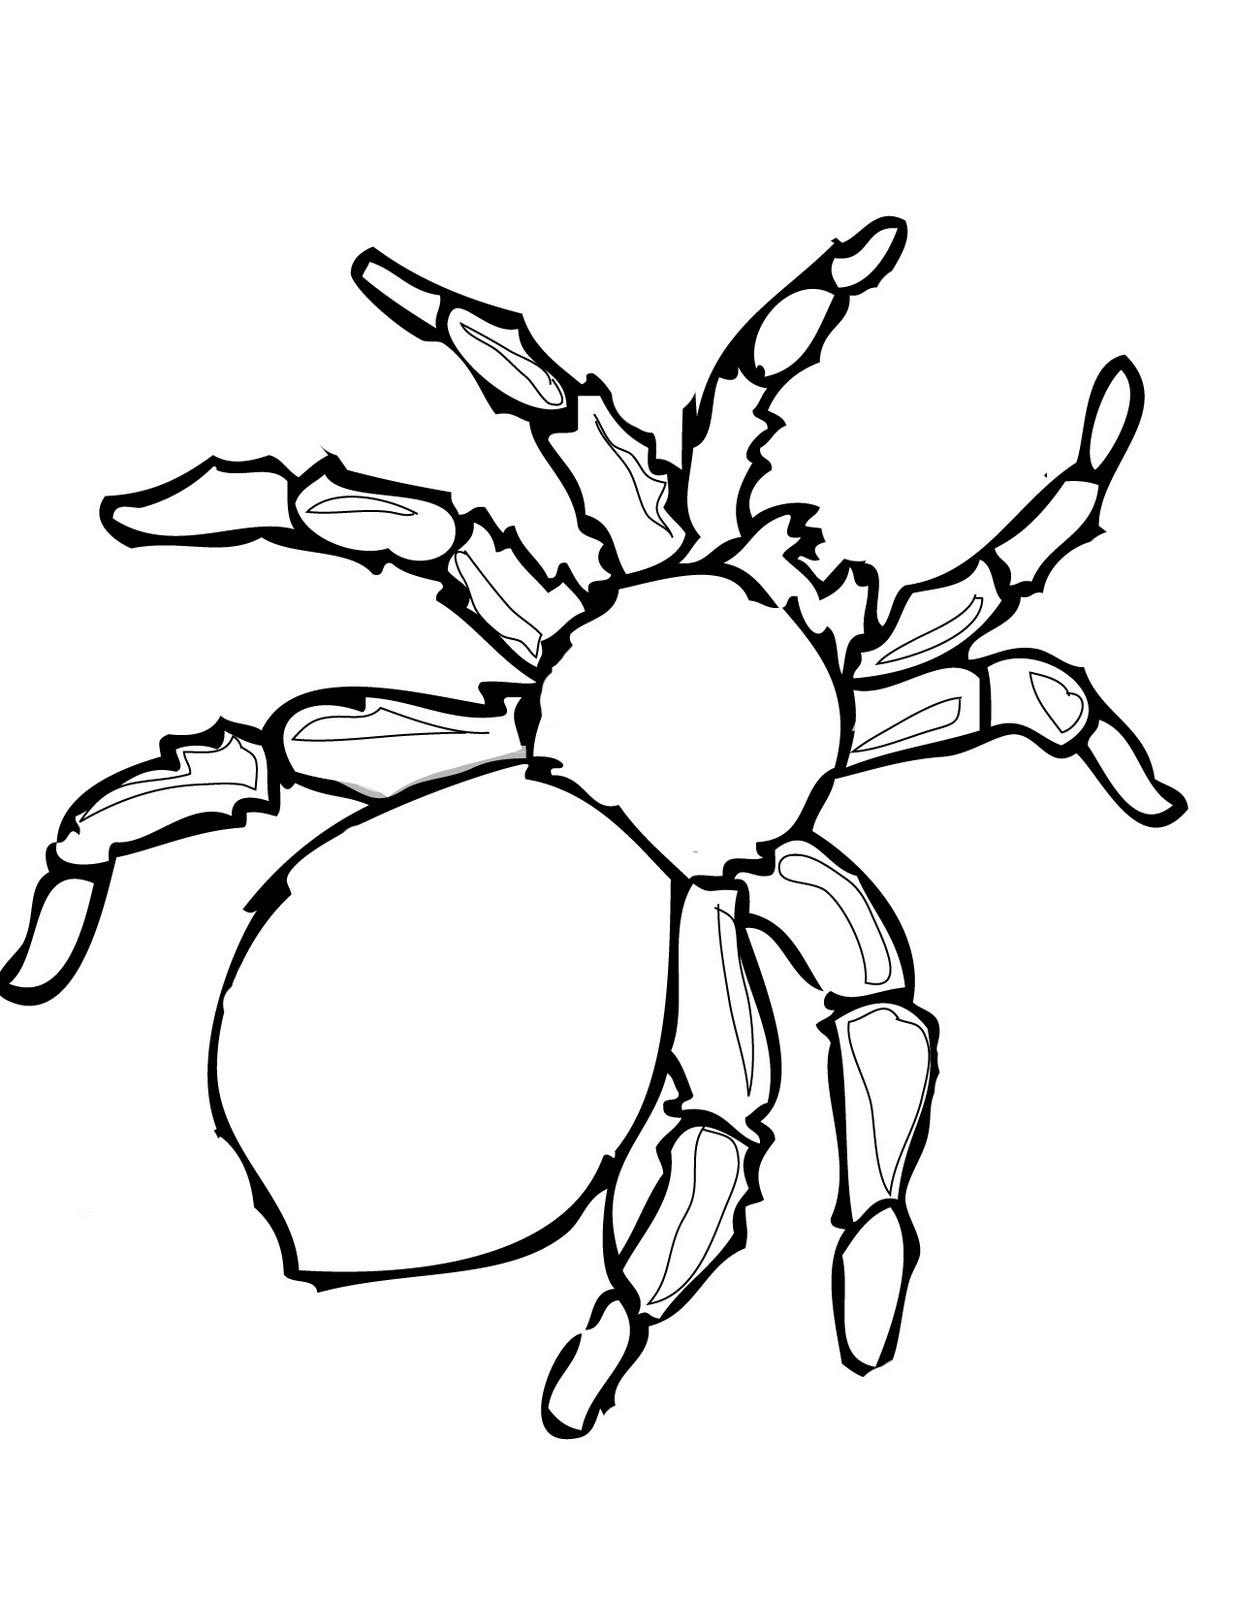 1236x1600 Spider Halloween Coloring Pages For Kids Free Printable Coloring